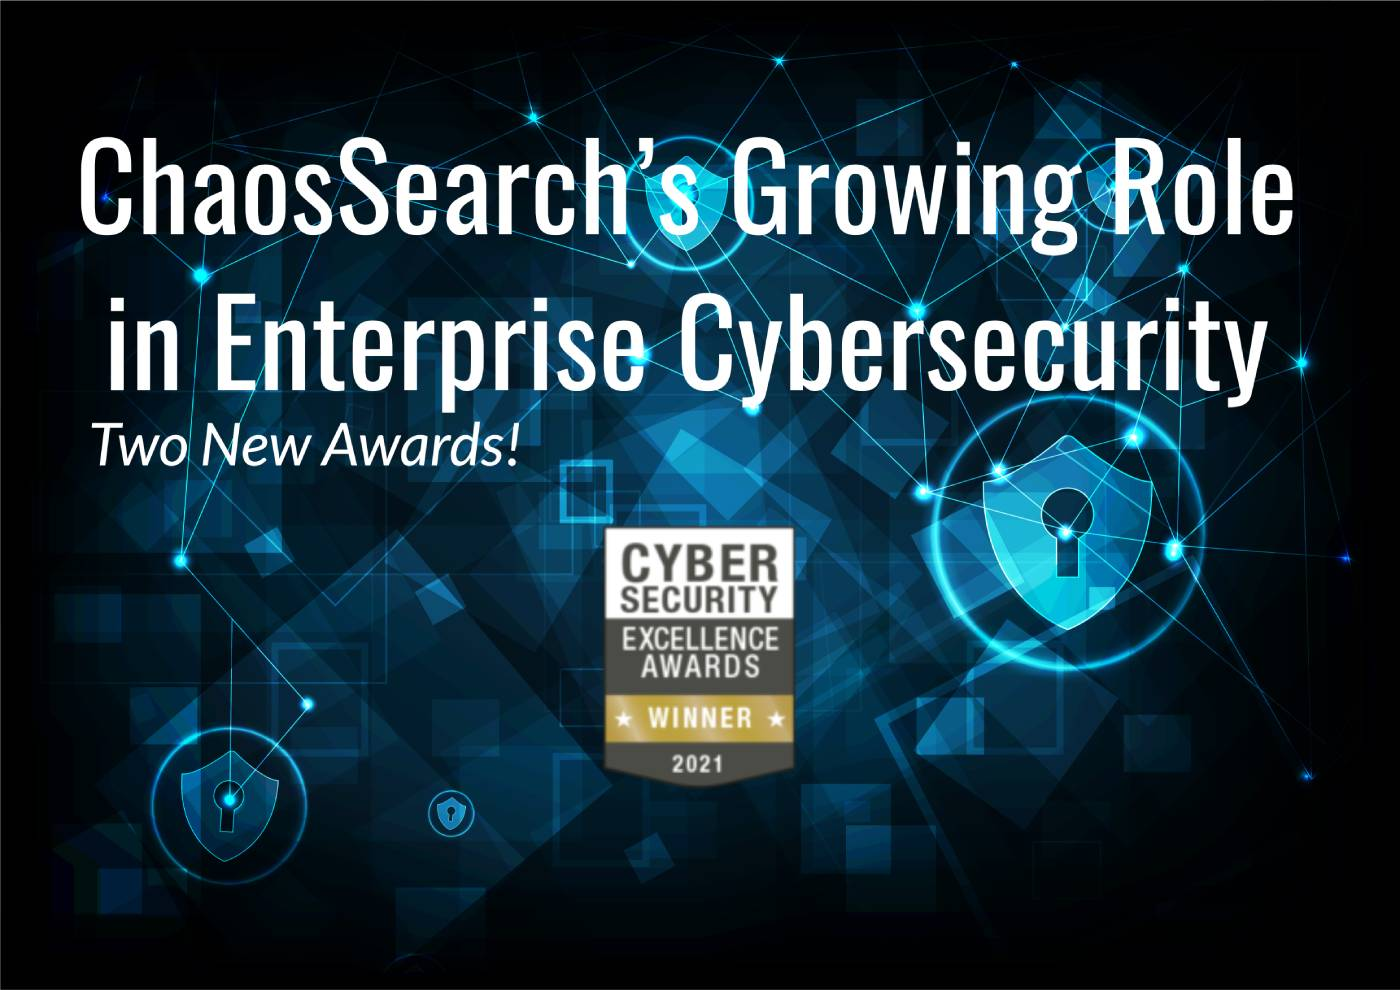 Two Major Industry Awards Confirm ChaosSearch's Growing Role in Enterprise Cybersecurity